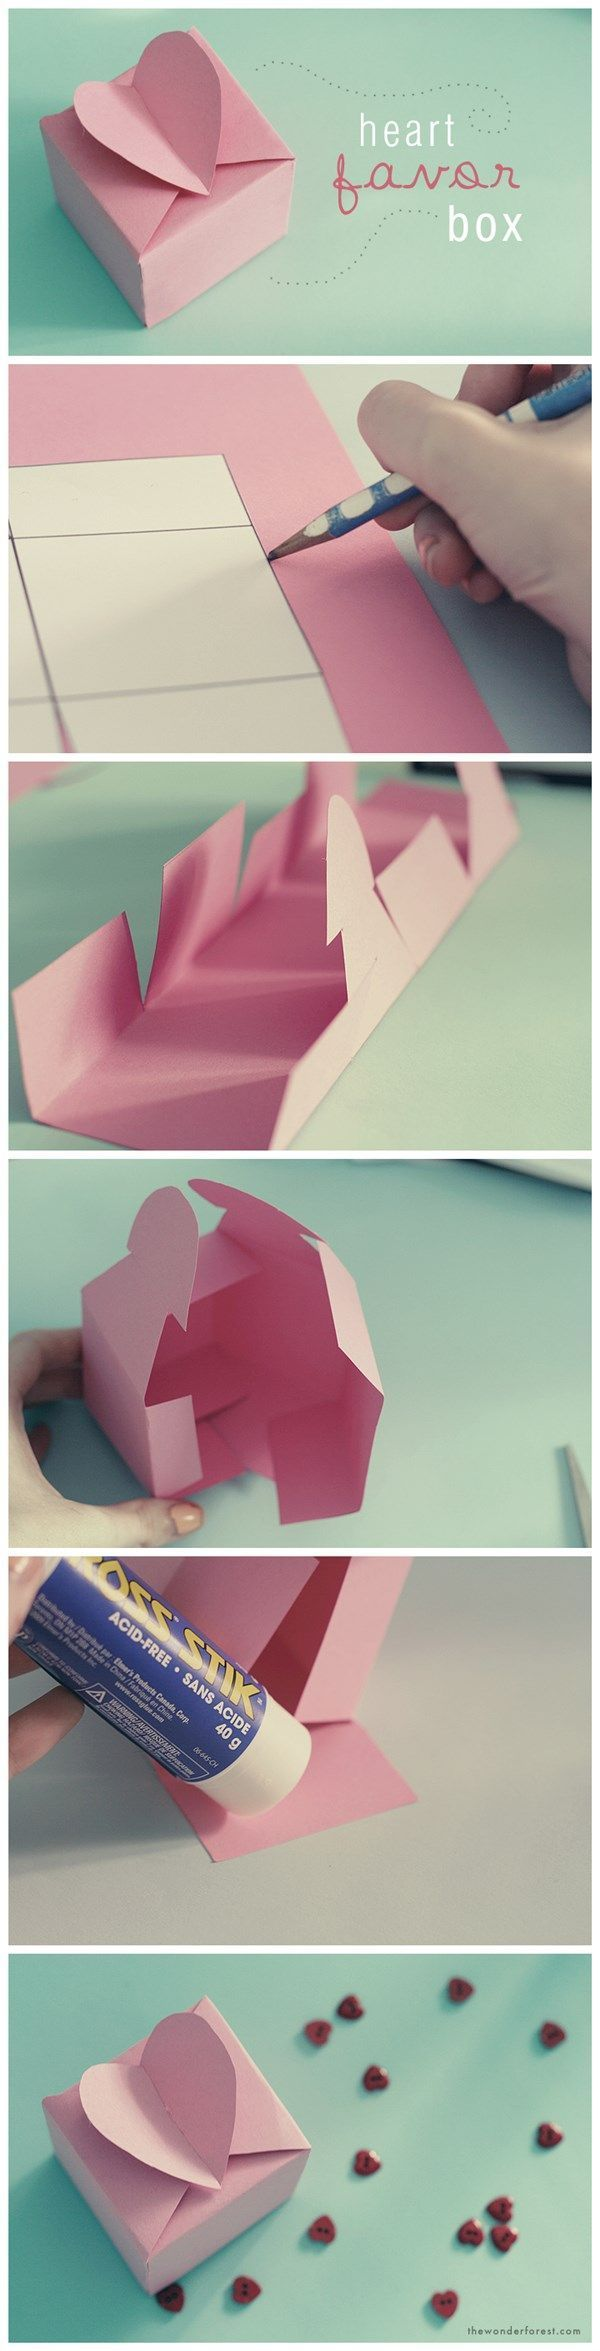 DIY Heart Favor Box Tutorial